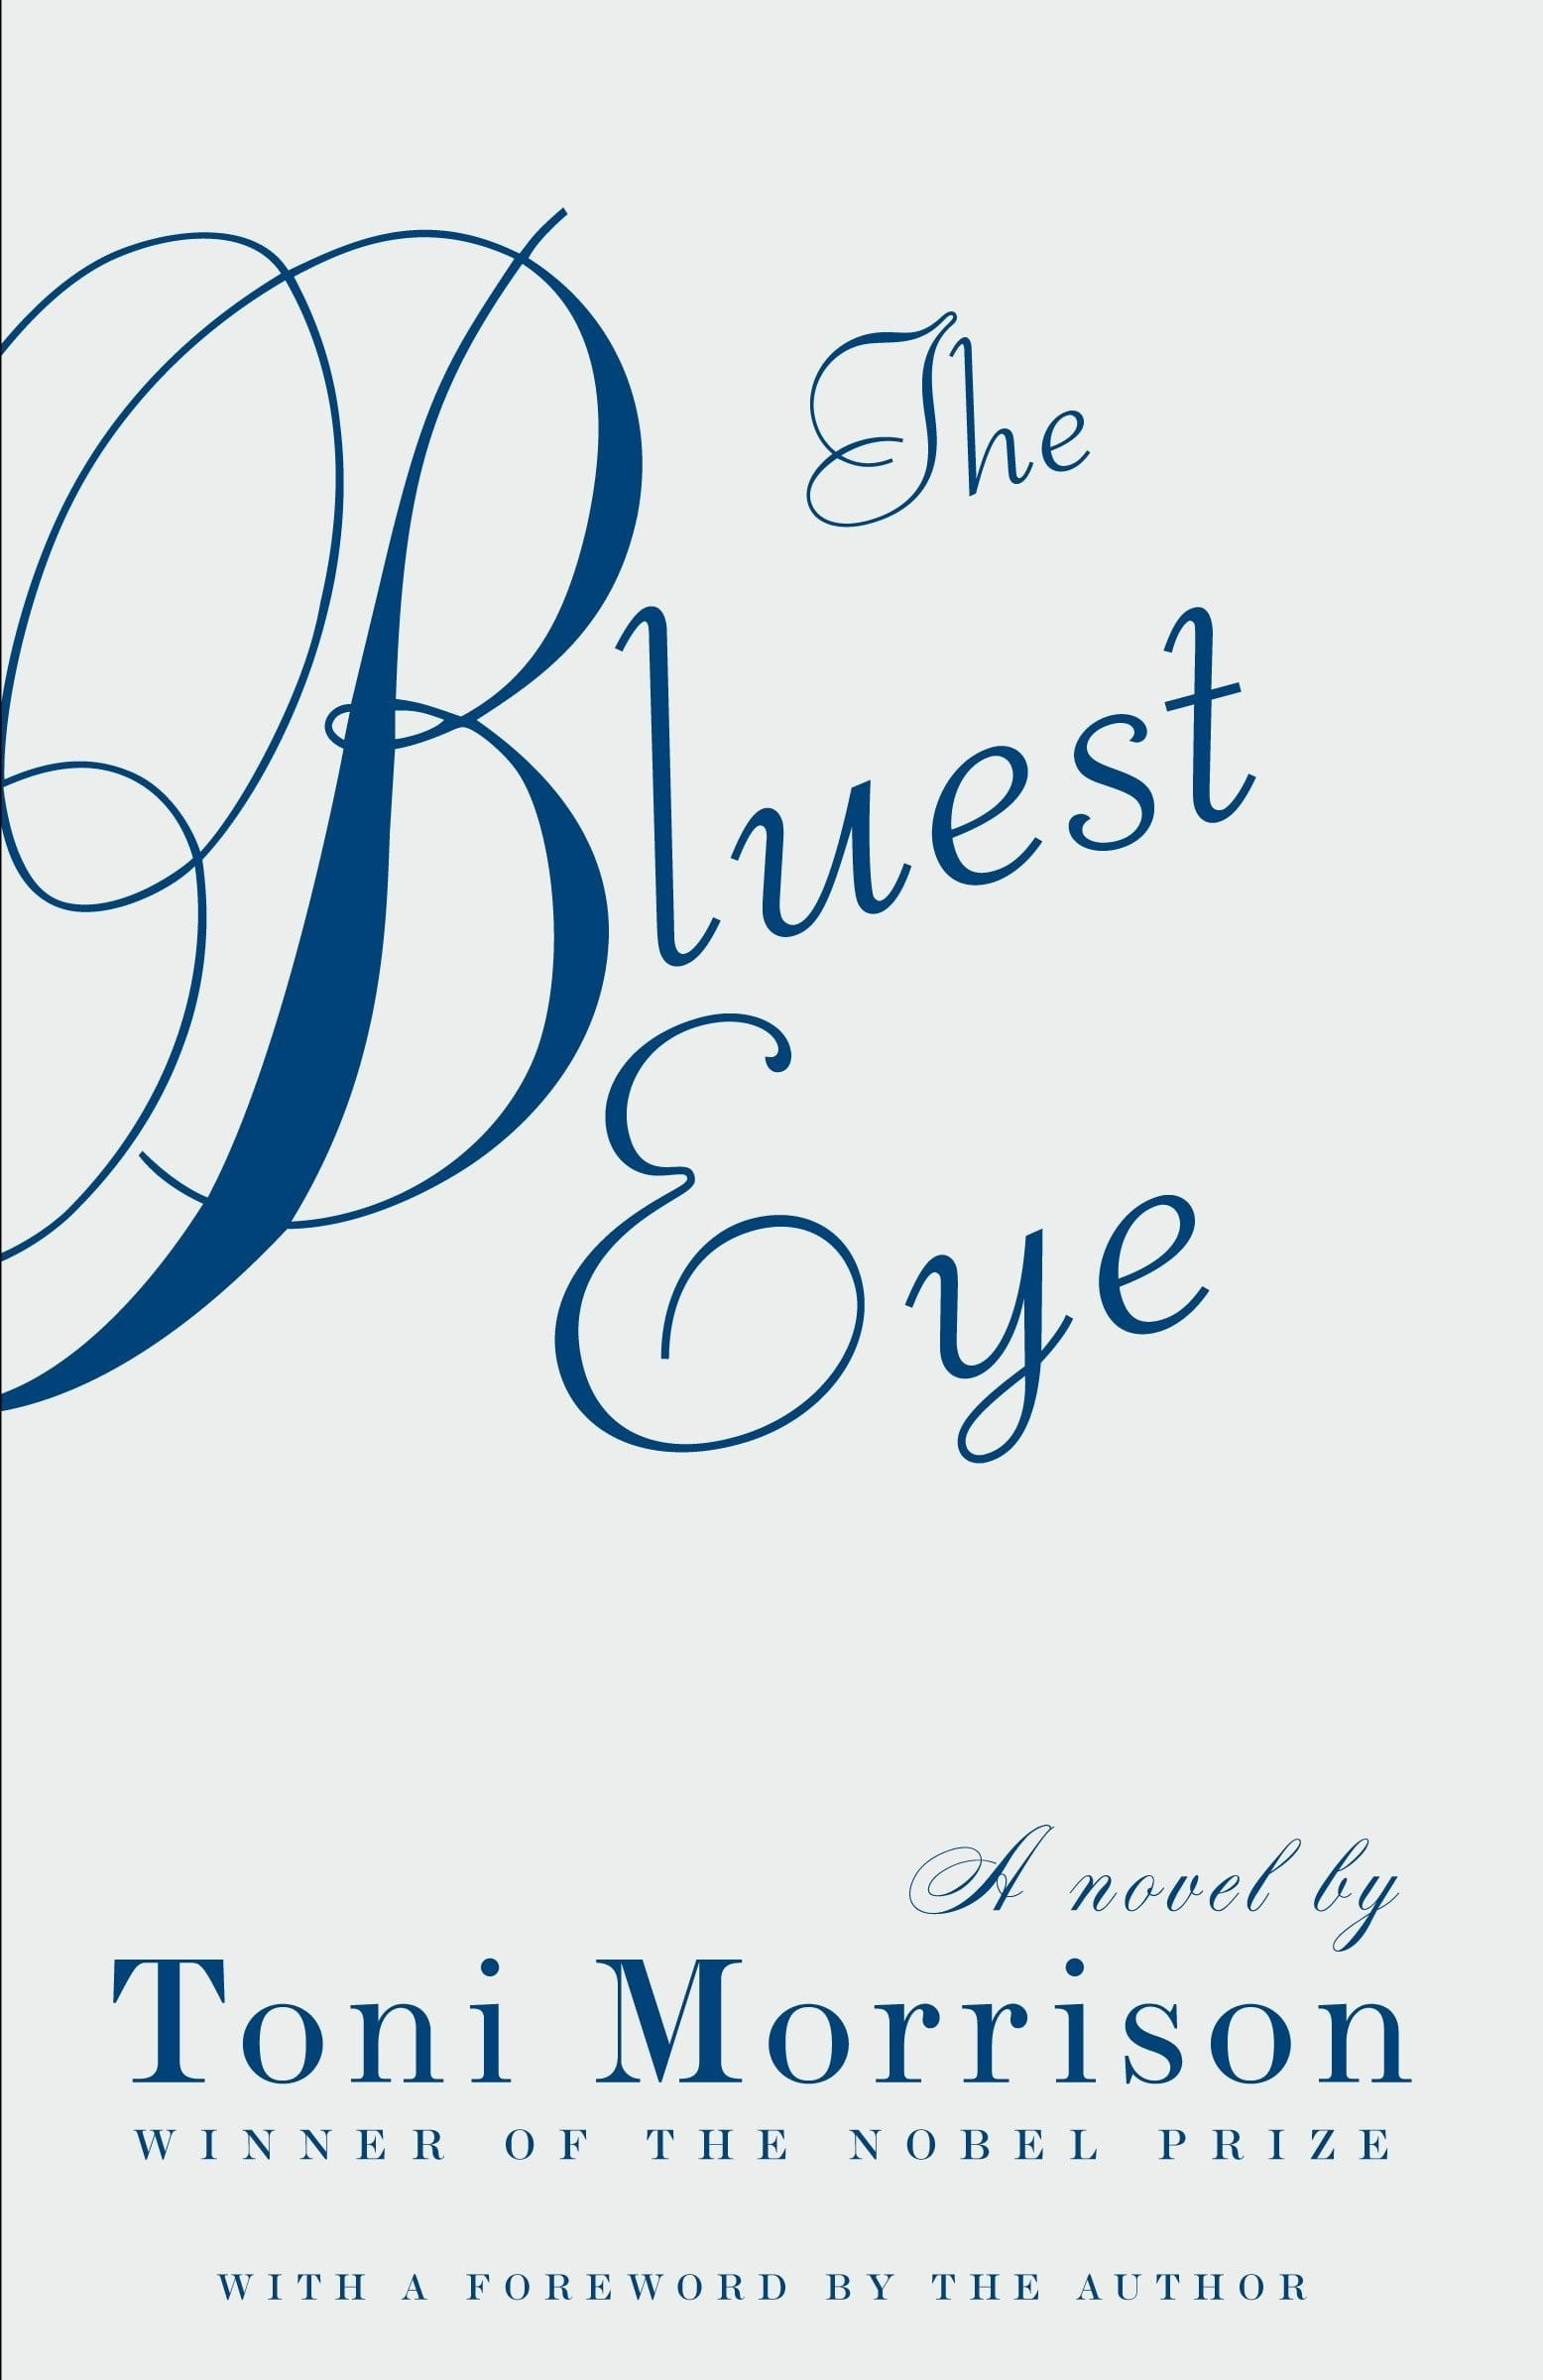 Essays on Bluest Eye